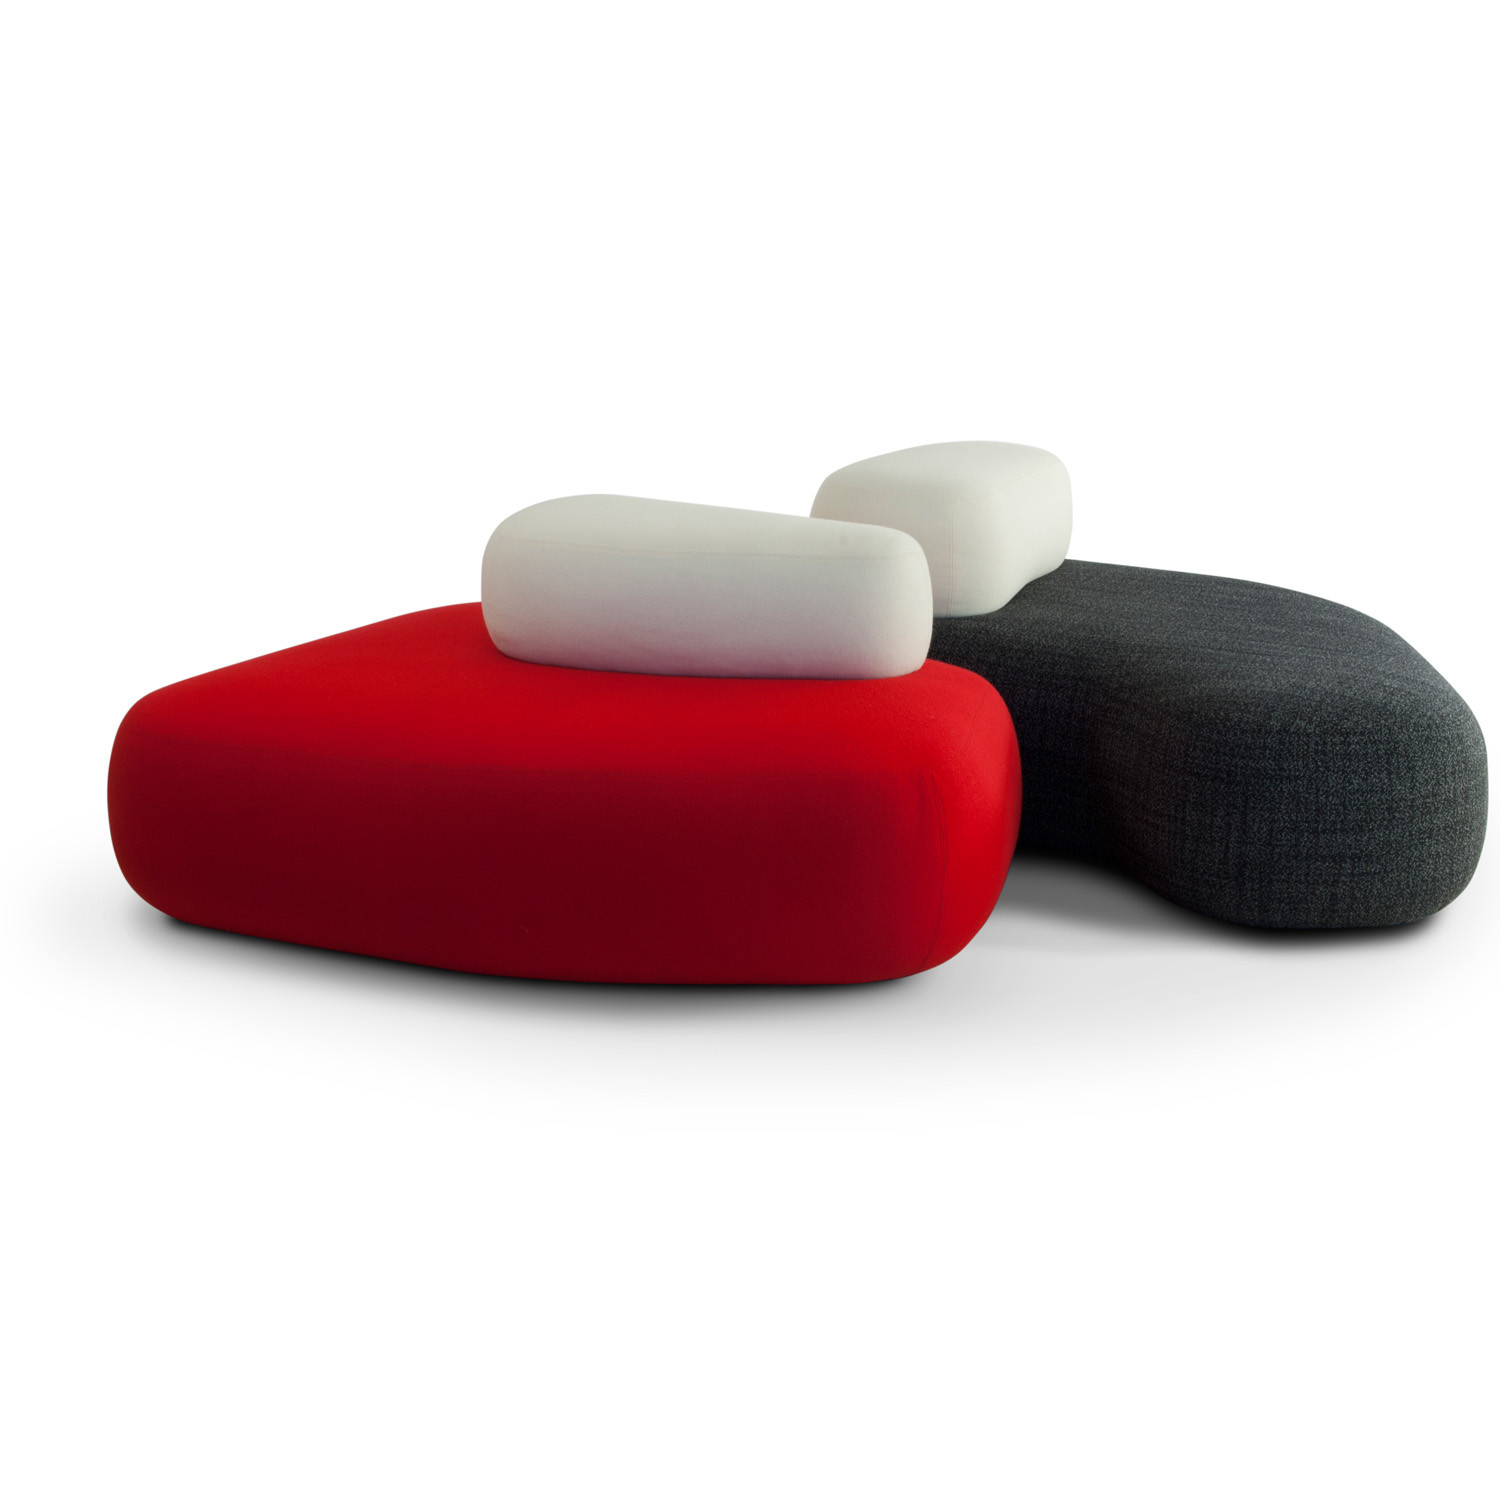 Nigel Coates HM63 Pebble Seating